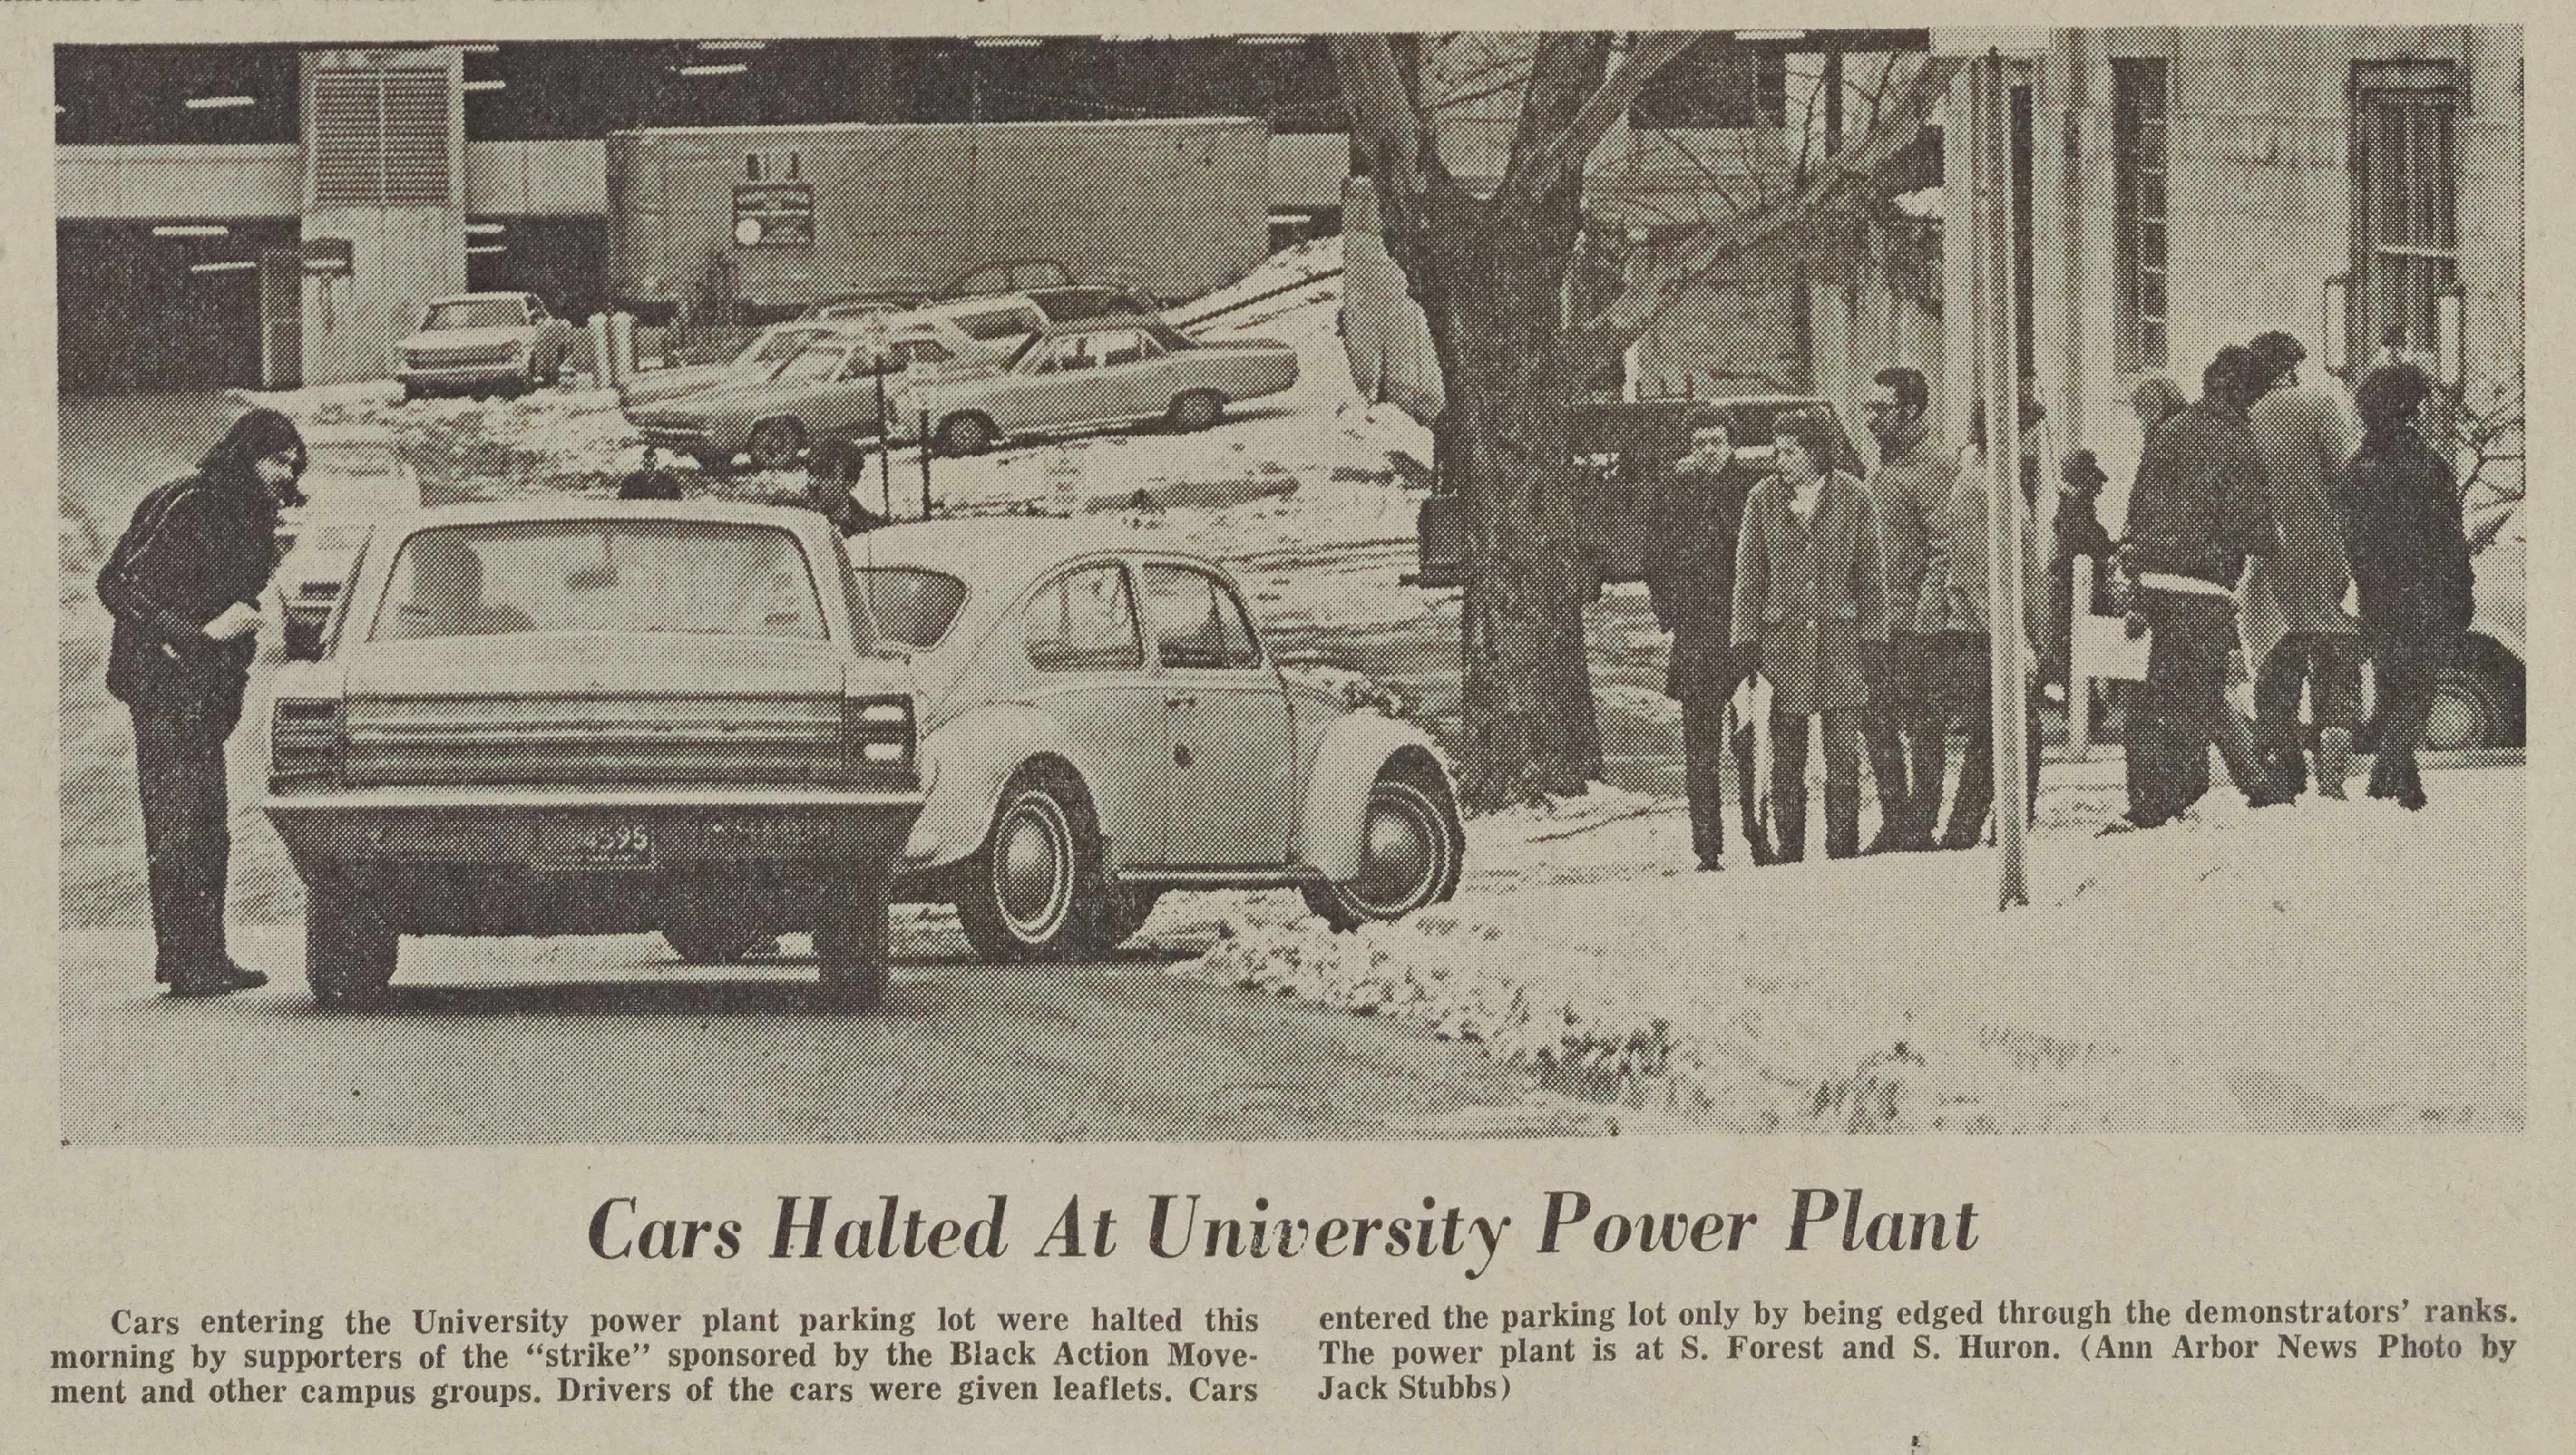 Cars Halted At University Power Plant image